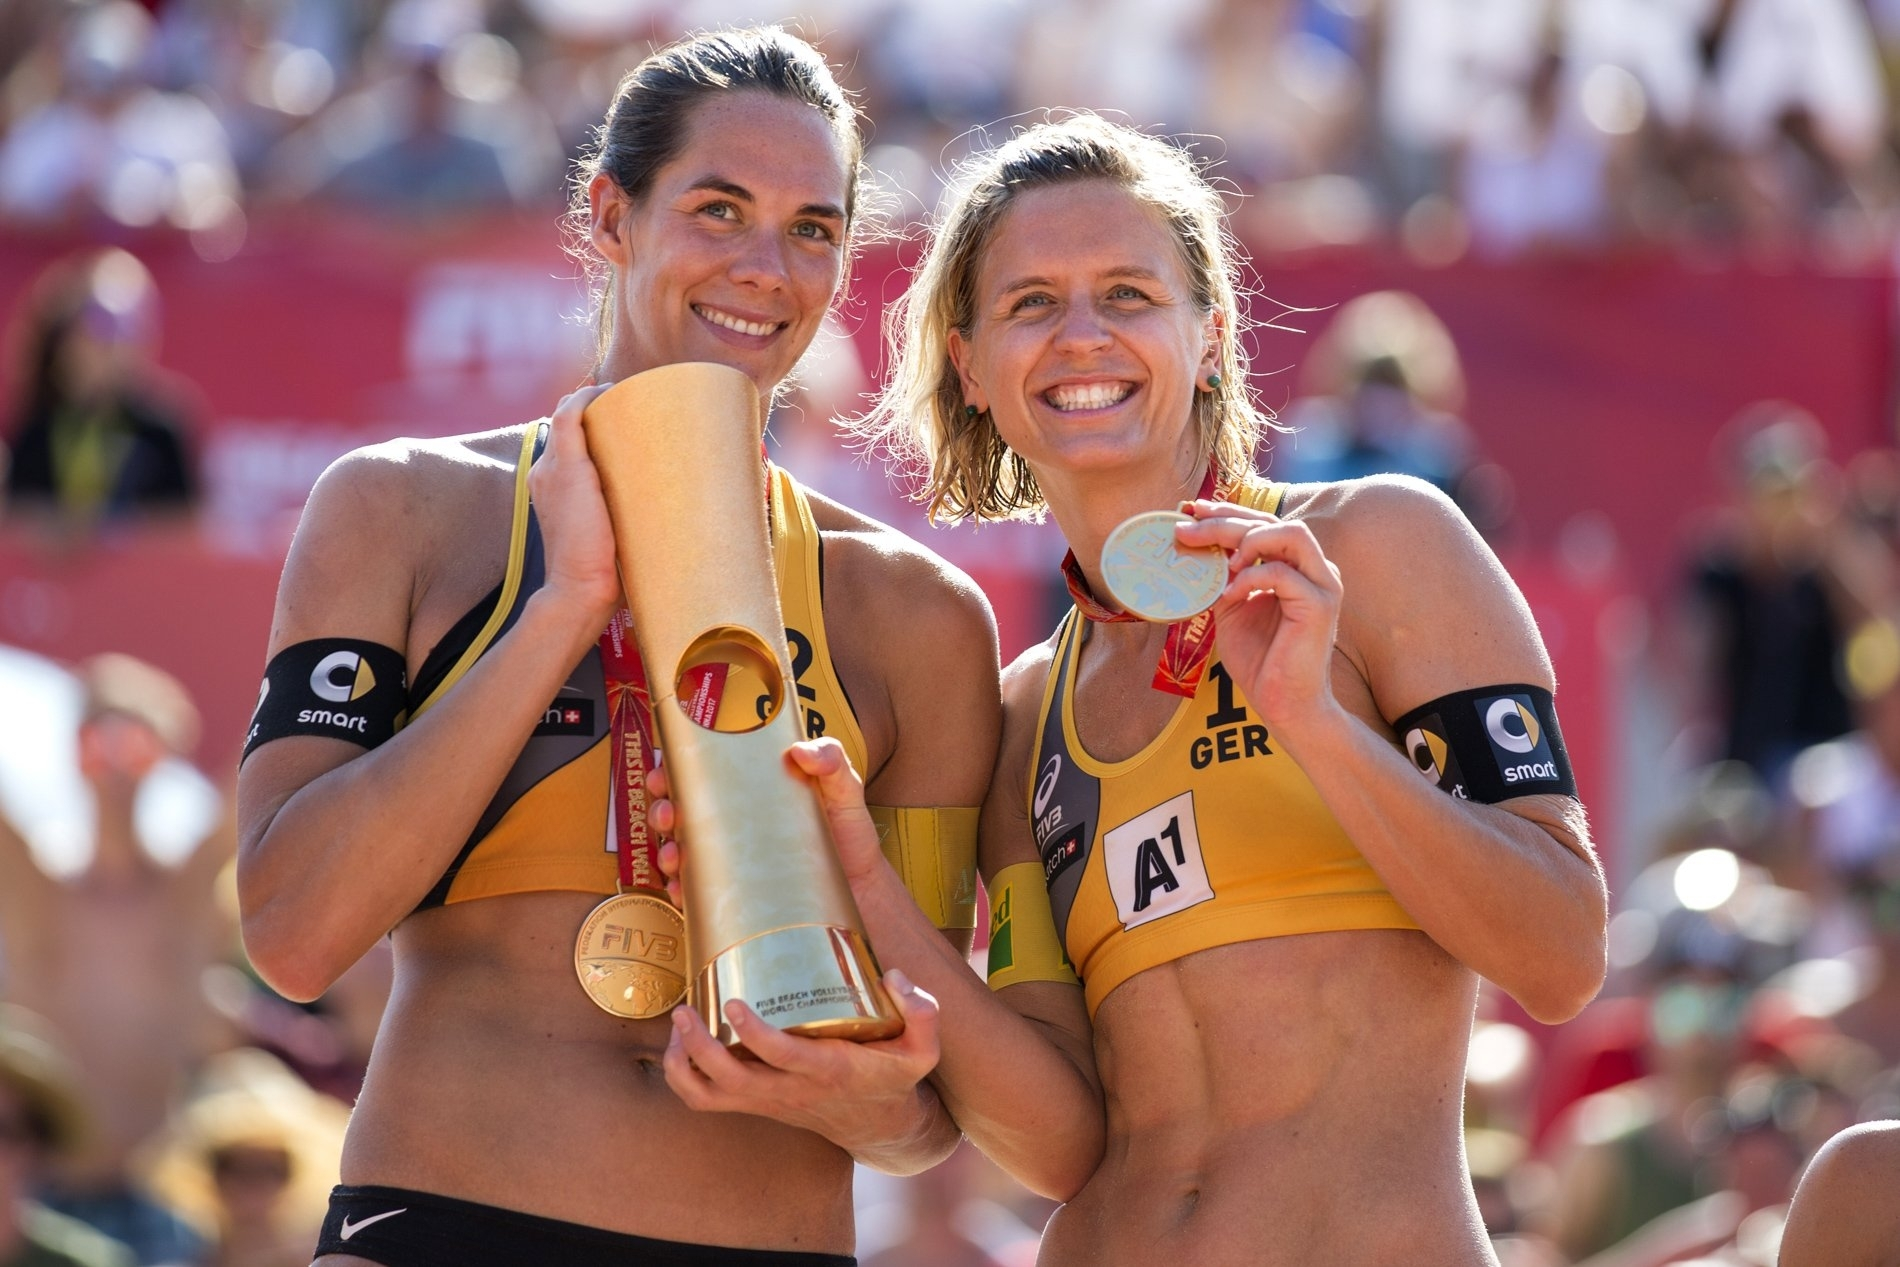 Kira (left) and Laura all smiles after taking World Championship gold in Vienna last summer